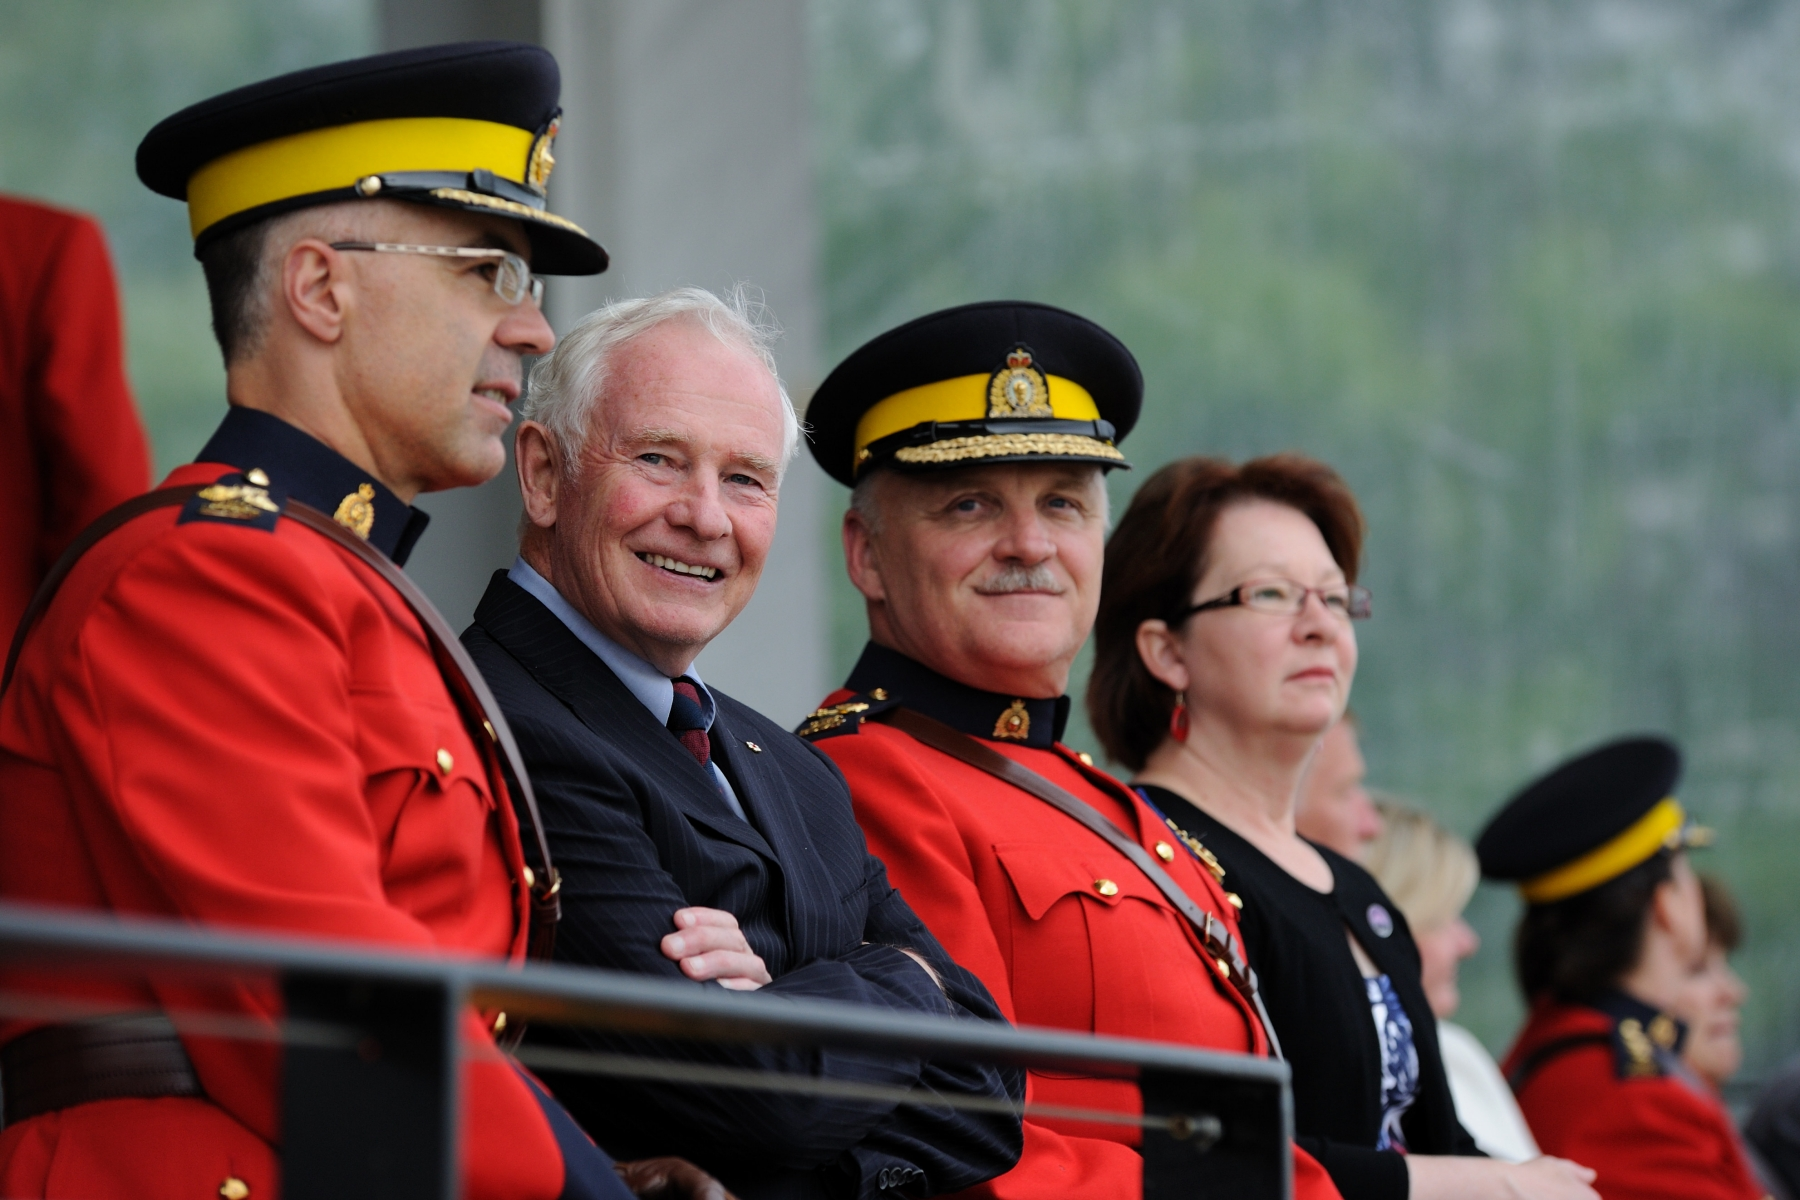 The Governor General attended the annual Canadian Sunset Ceremonies featuring the Royal Canadian Mounted Police Musical Ride. His Excellency was accompanied by Deputy Commissioner Steve Graham (right), Deputy Commissioner East.